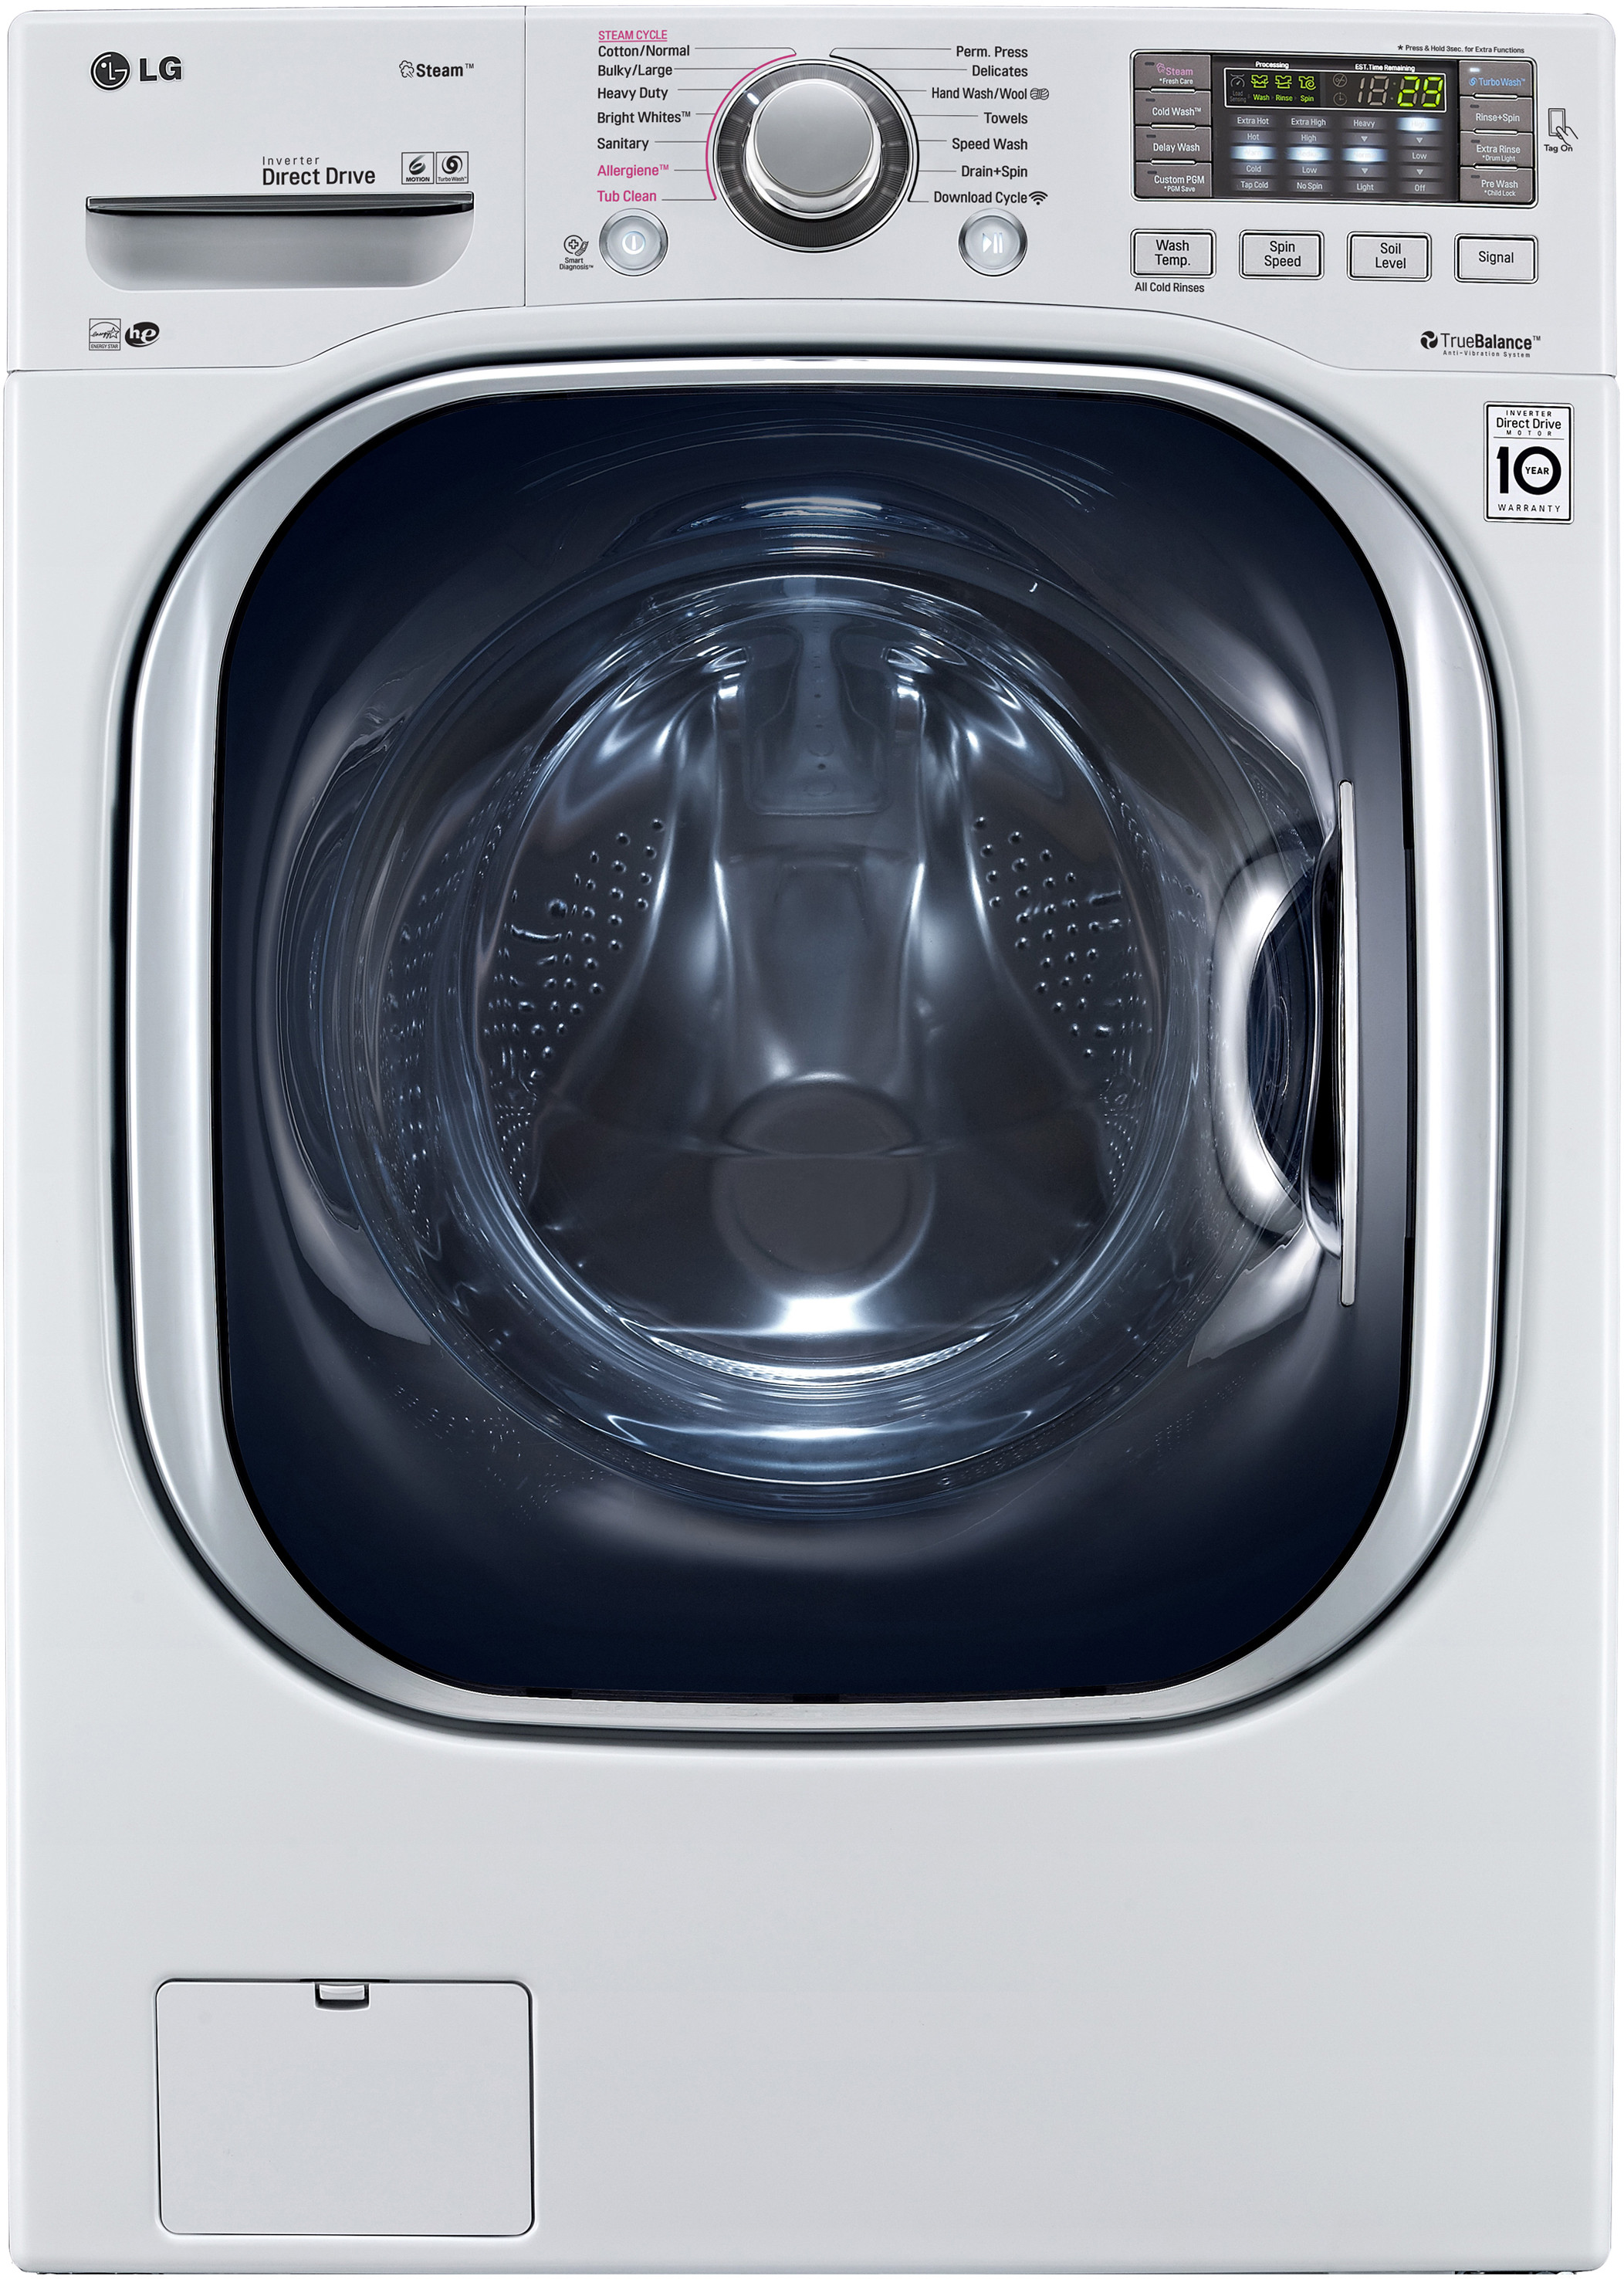 New Washer And Dryer Lg Wm4370hwa